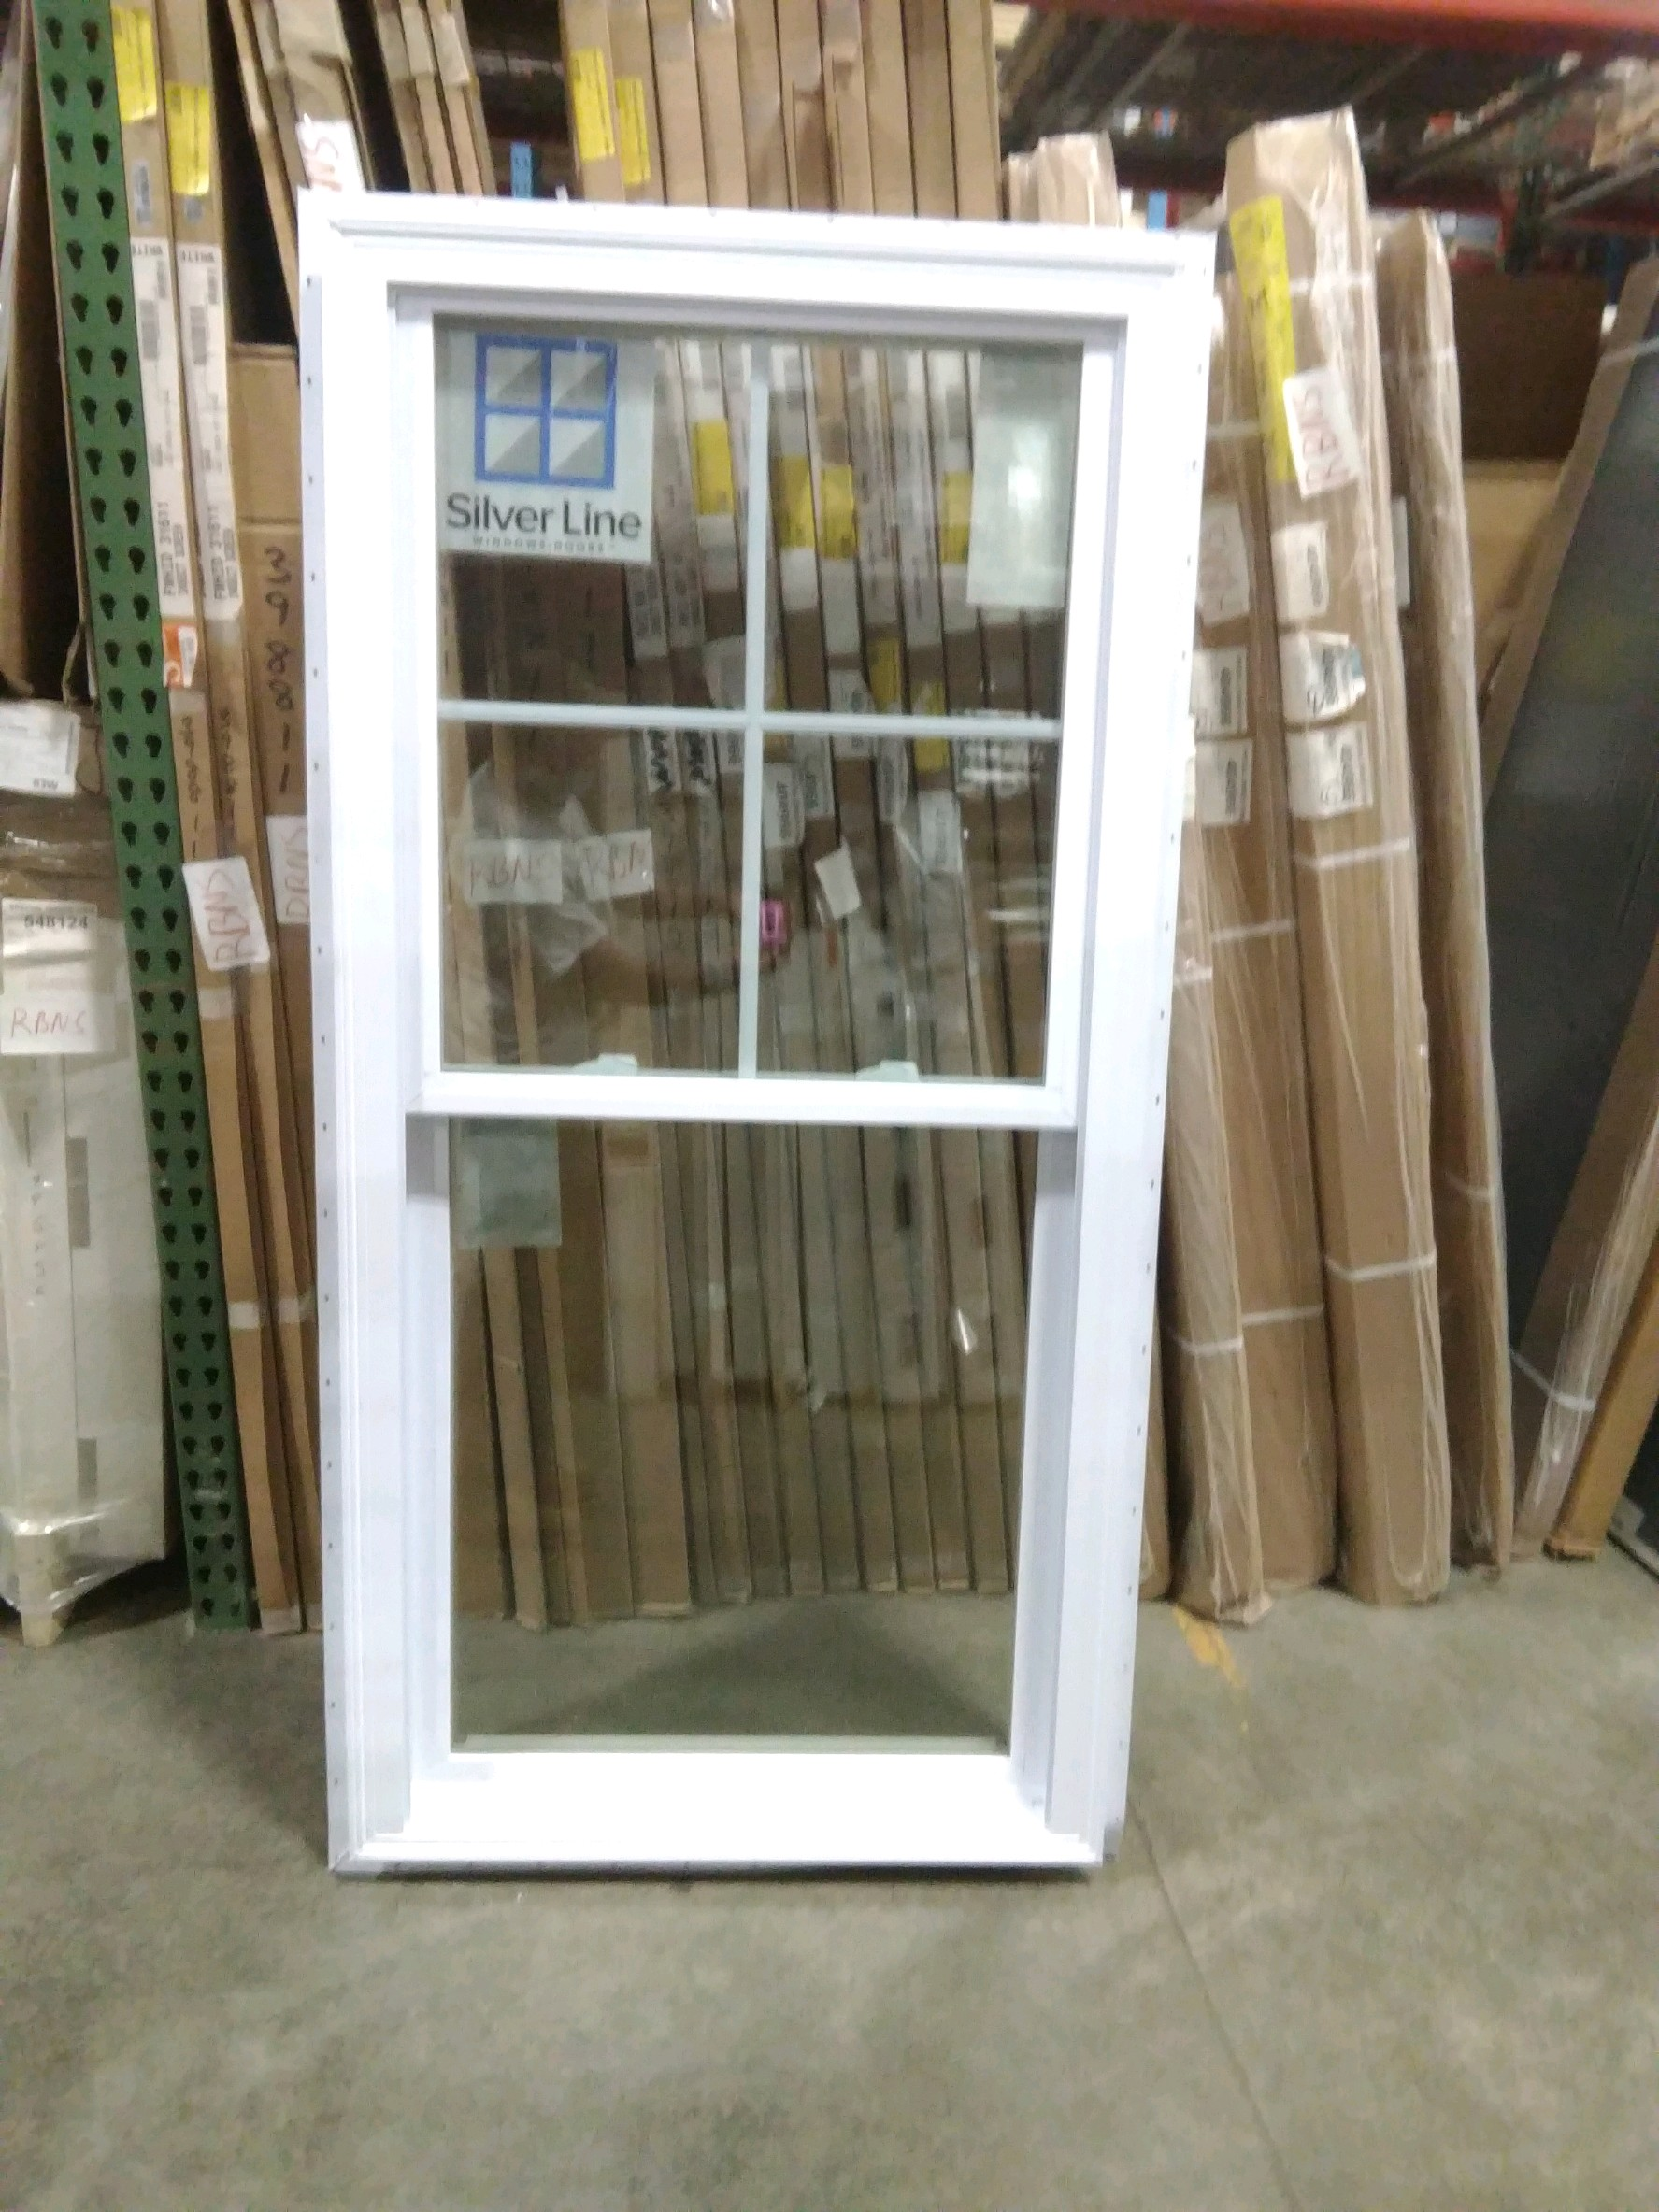 Silverline Double Hung Window. 4 over 1